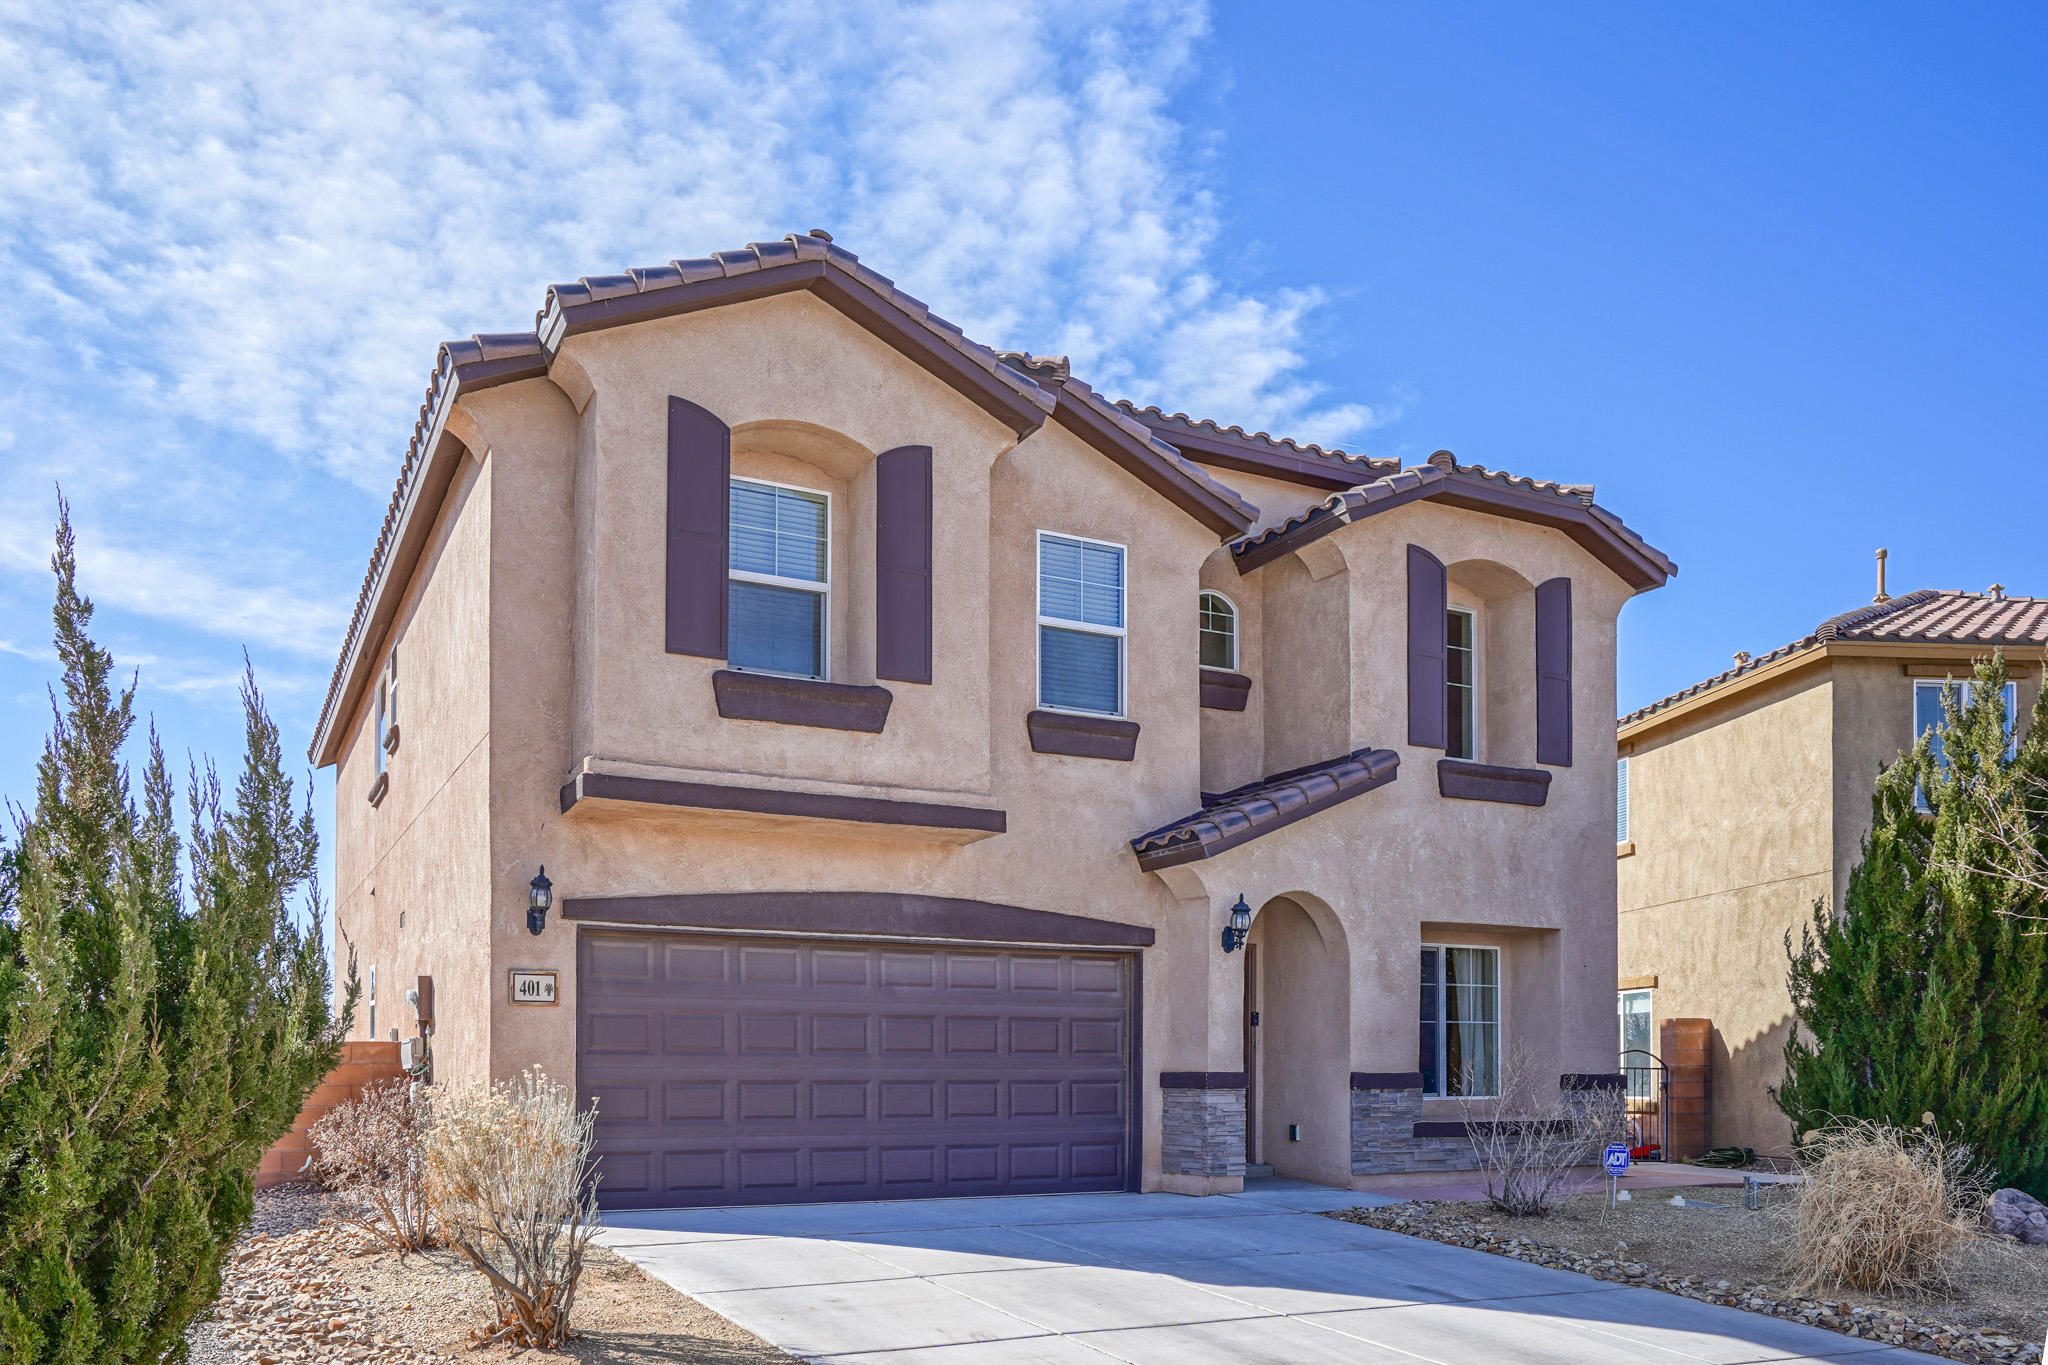 Open House Wednesday 3/3 from 3- 6:30 pm. 4 Bedroom Loma Colorado 2 story Great Room Floor plan - Isadora plan. Spacious Dream Kitchen features large breakfast bar island, walk in pantry. Luxurious Owner's Suite - double sinks, garden tub, separate shower, 2 walk-in closets, water closet. Lovely landscaped south facing backyard backs to walking path, covered patio. Parks, Tennis, Aquatic Center, Ice Skating, Soccer, Dog Park, Volleyball, Walking Trails! 25 minutes to downtown / APO.  5 minutes to Cottonwood Mall.